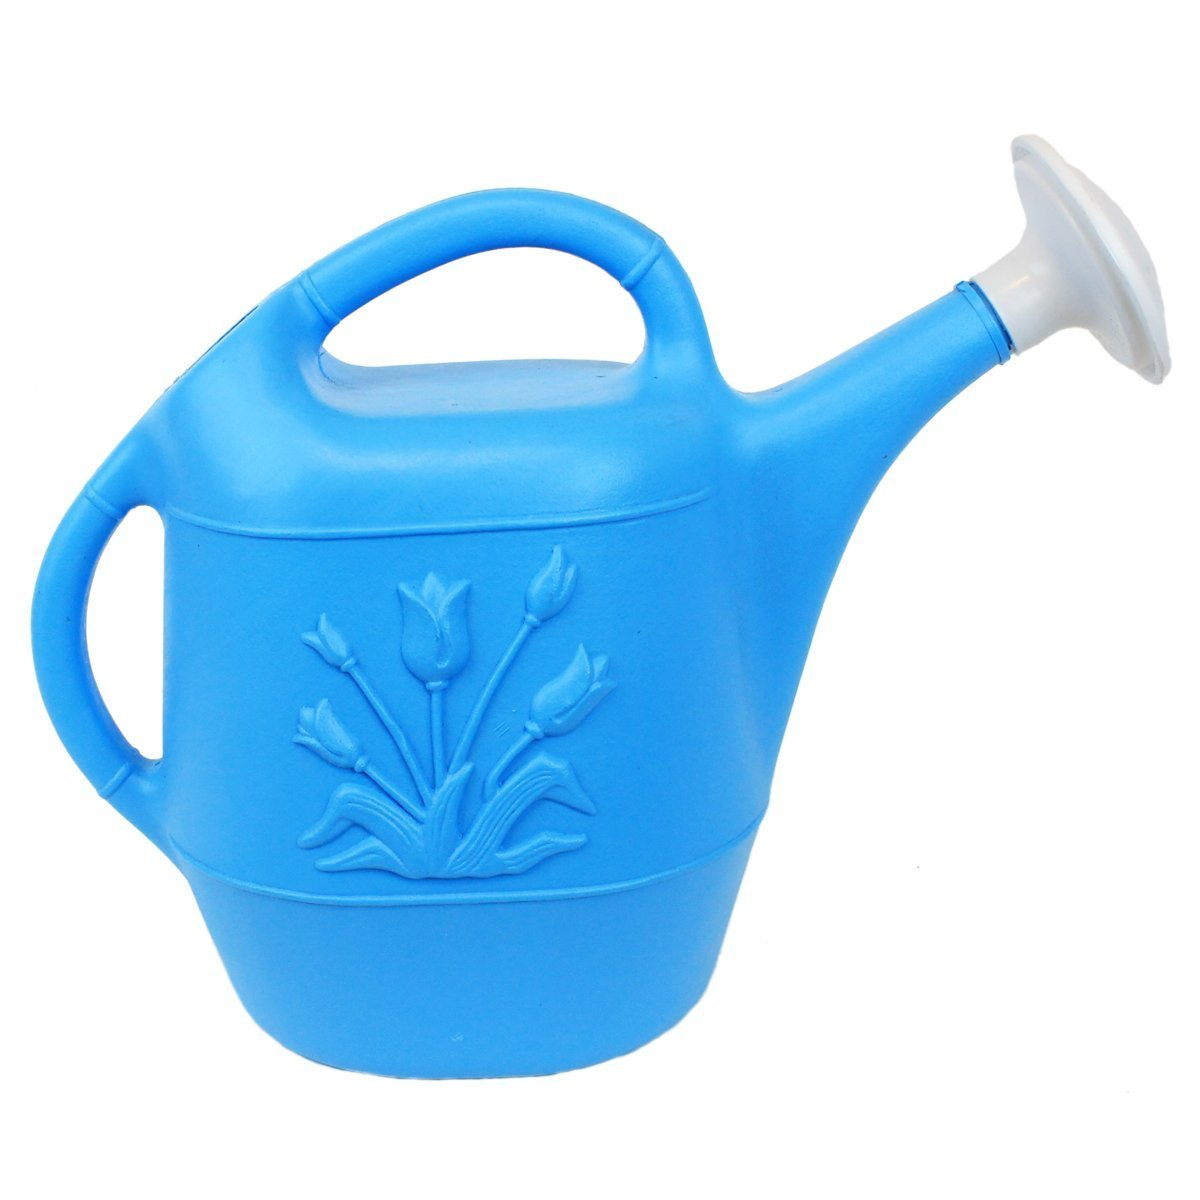 Union 63166 Watering Can with Tulip Design, 1 gallon, Caribbean Blue